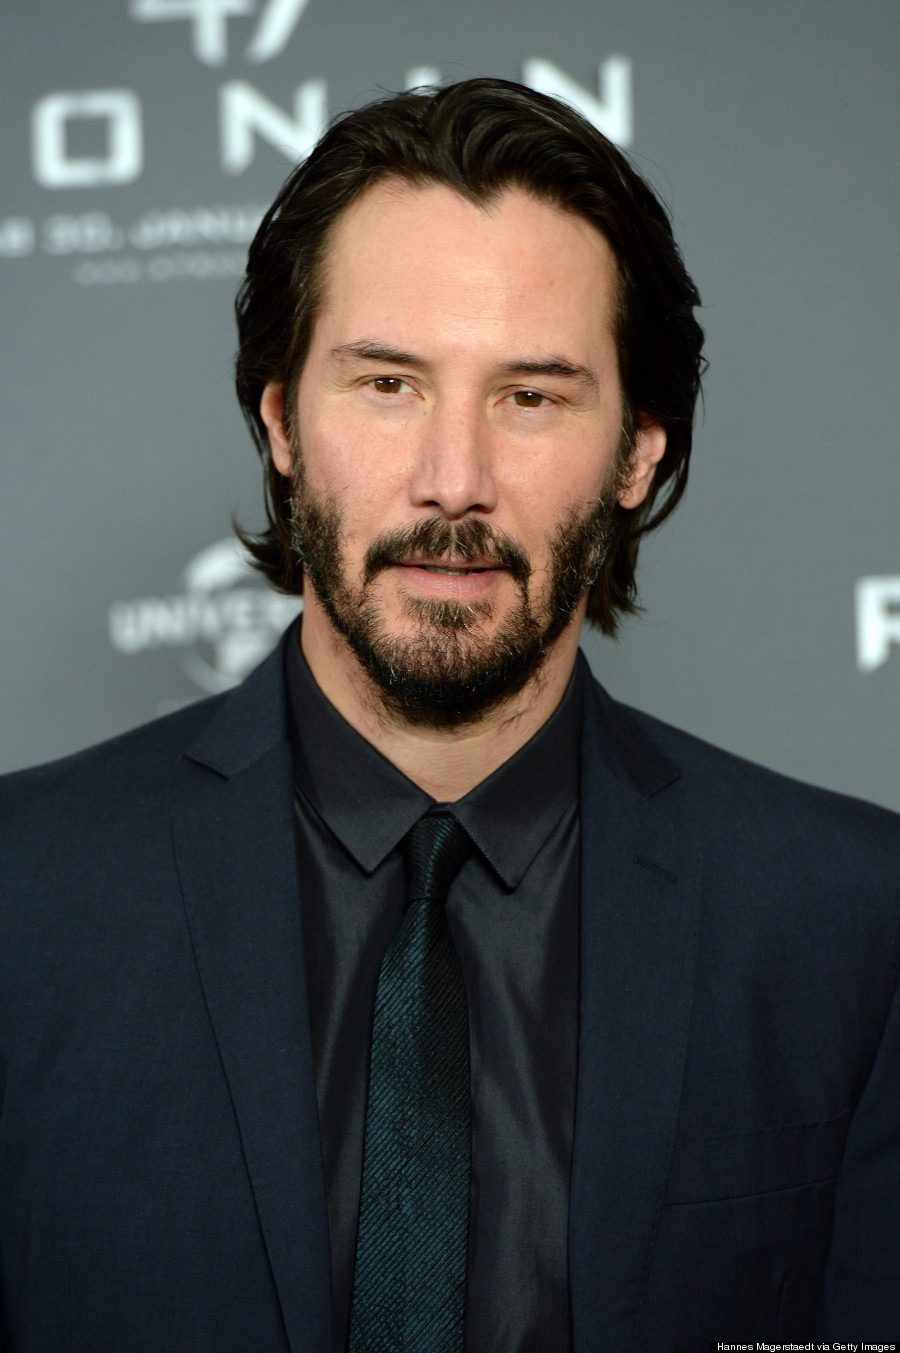 Actual Proof that Keanu Reeves is Immortal